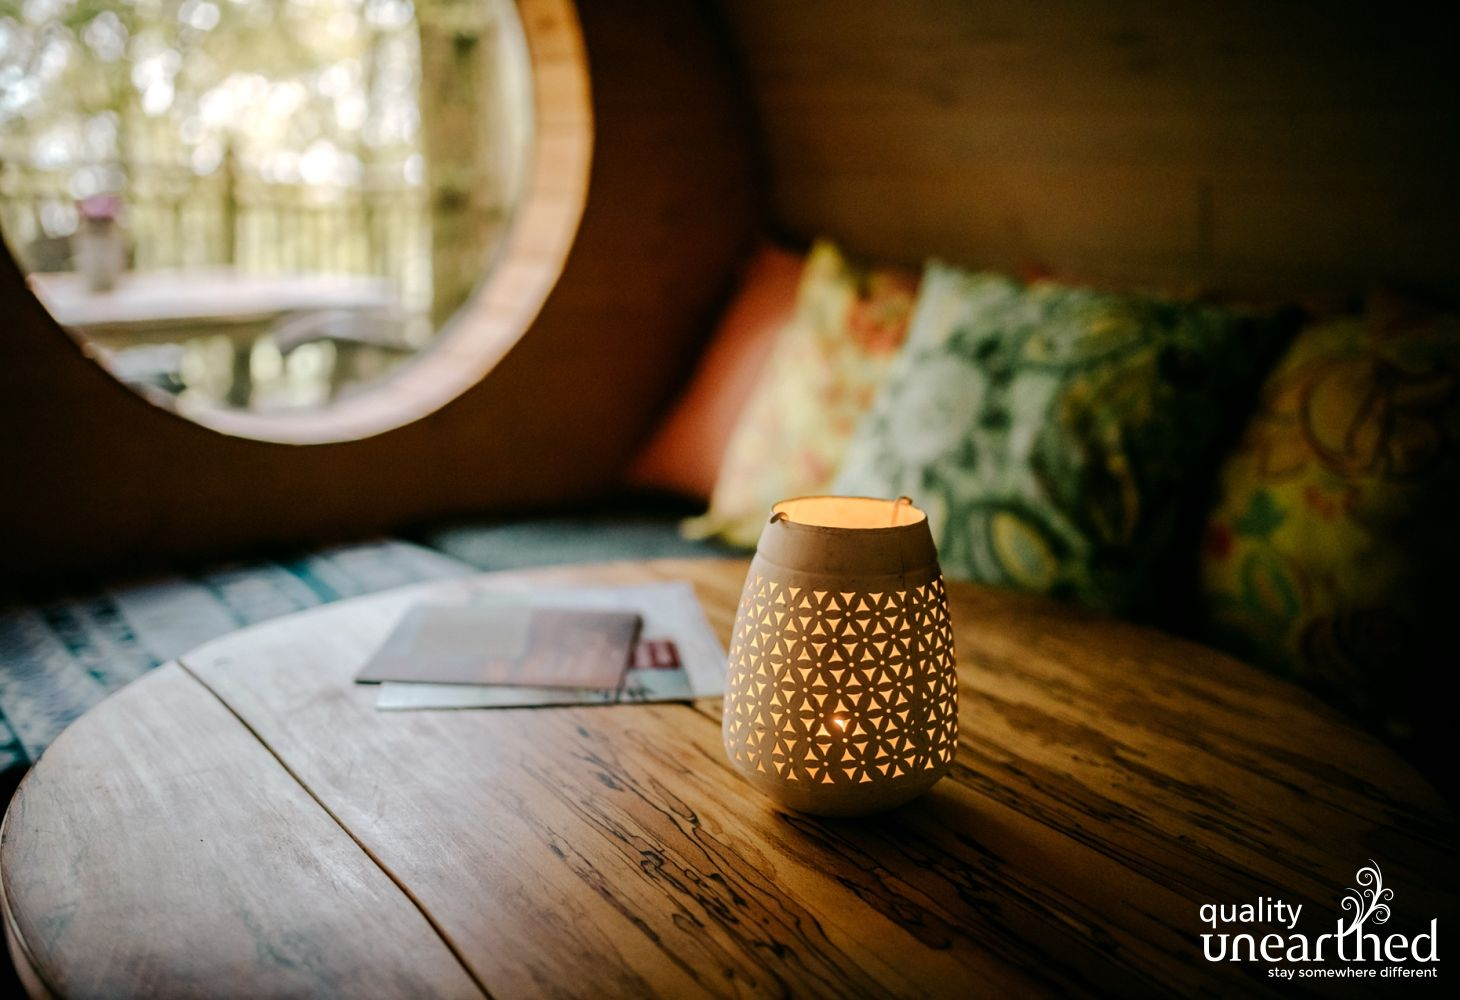 A Moroccan style candle sits in the foreground. Behind this is a handcrafted porthole style window which looks out from this romantic treehouse to the woodland